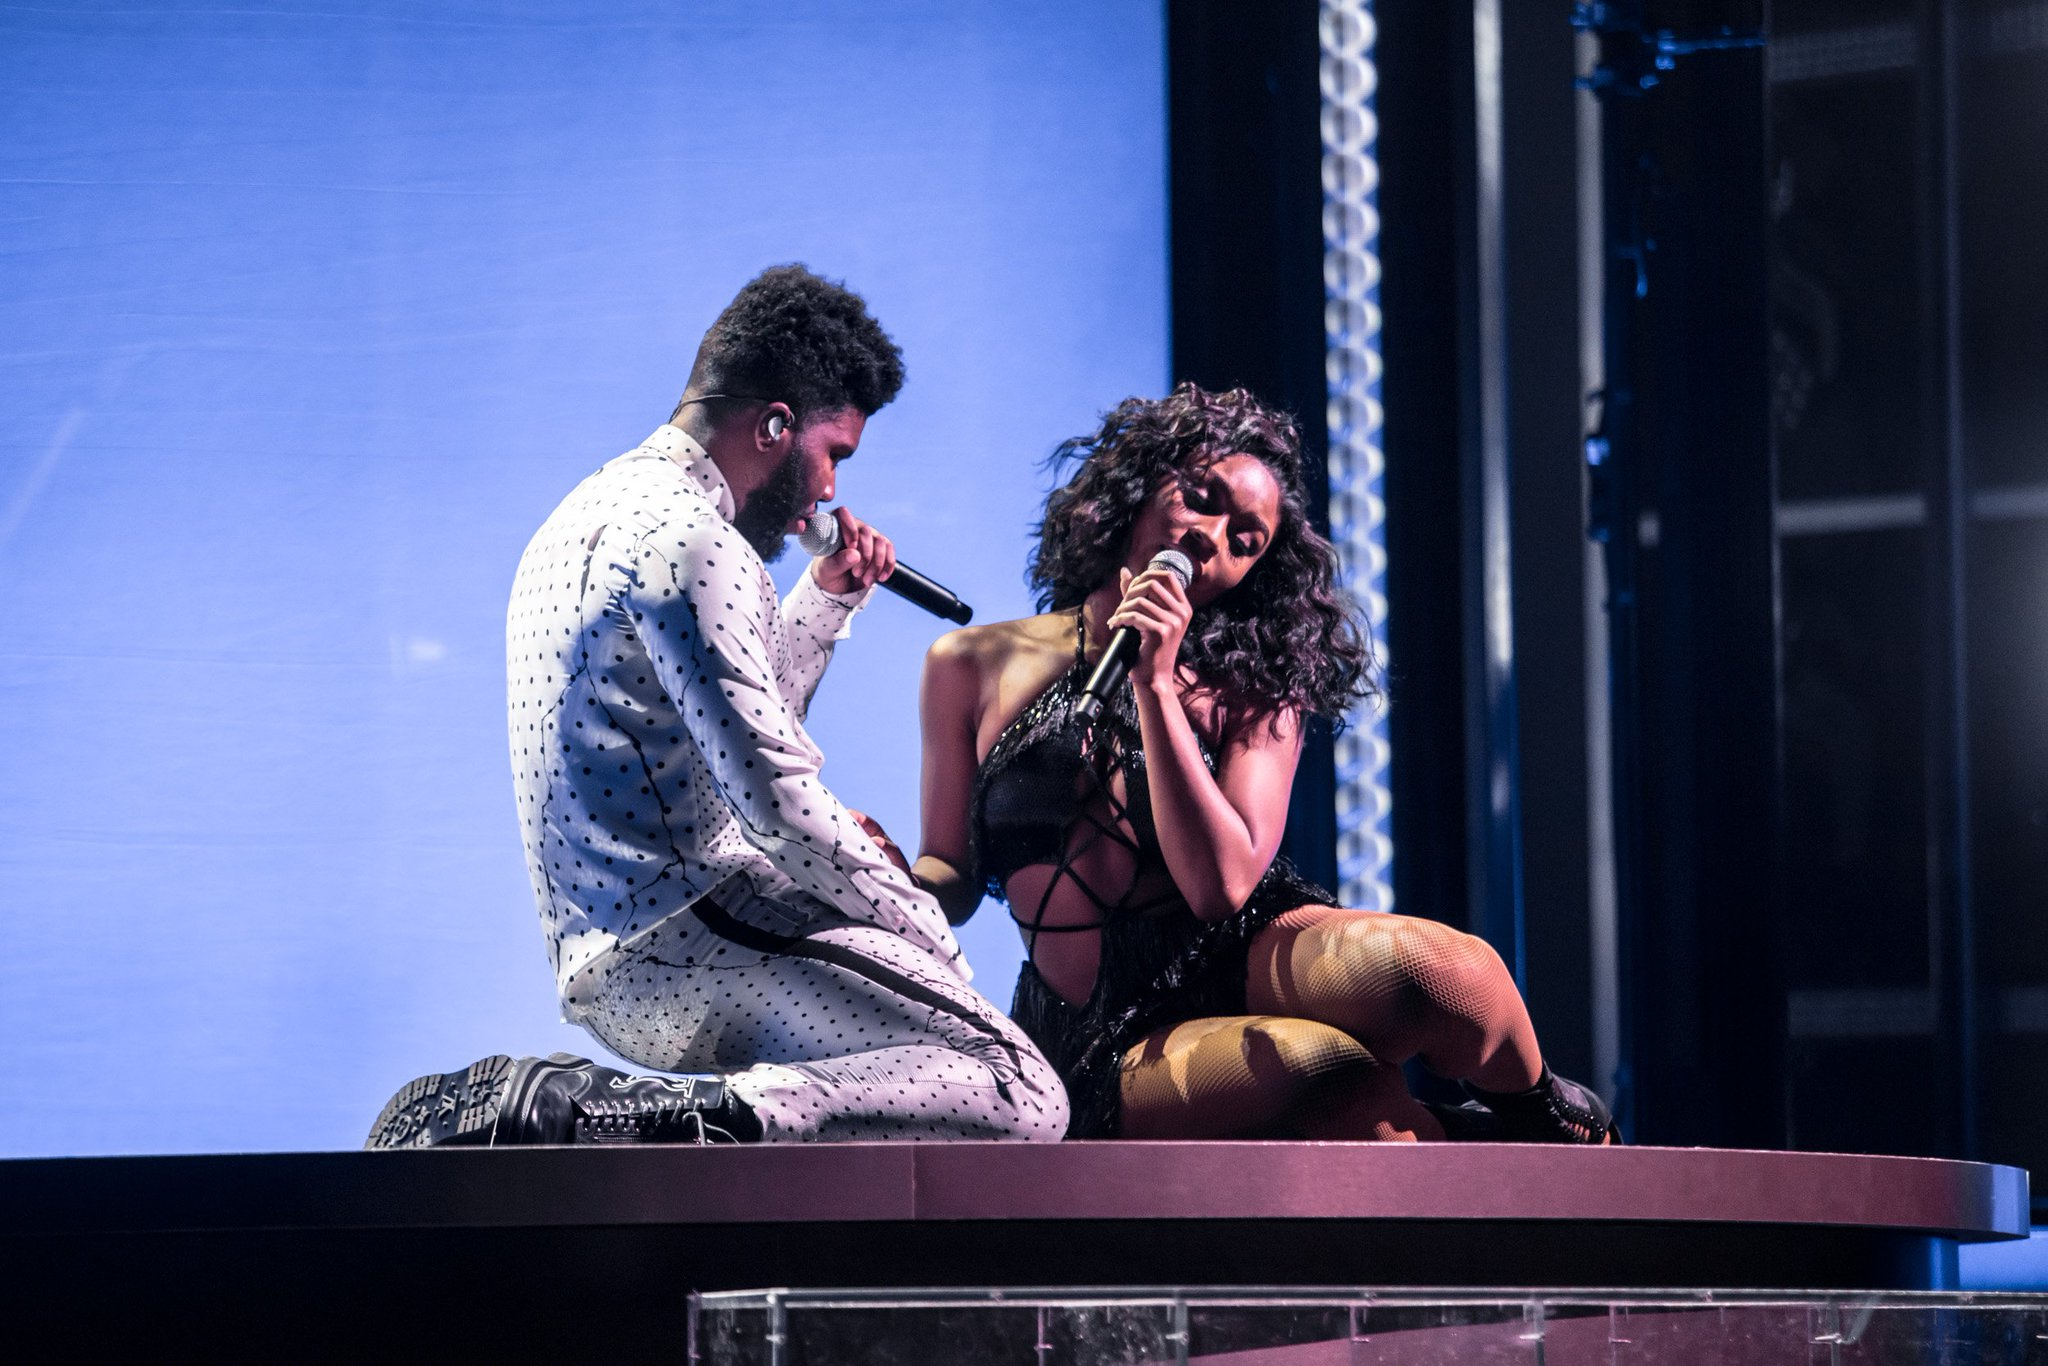 .@normani & @thegreatkhalid performing Love Lies at the 2018 Billboard Music Awards (pic via DCP Social/DCP Digital) https://t.co/sRPnovICG7